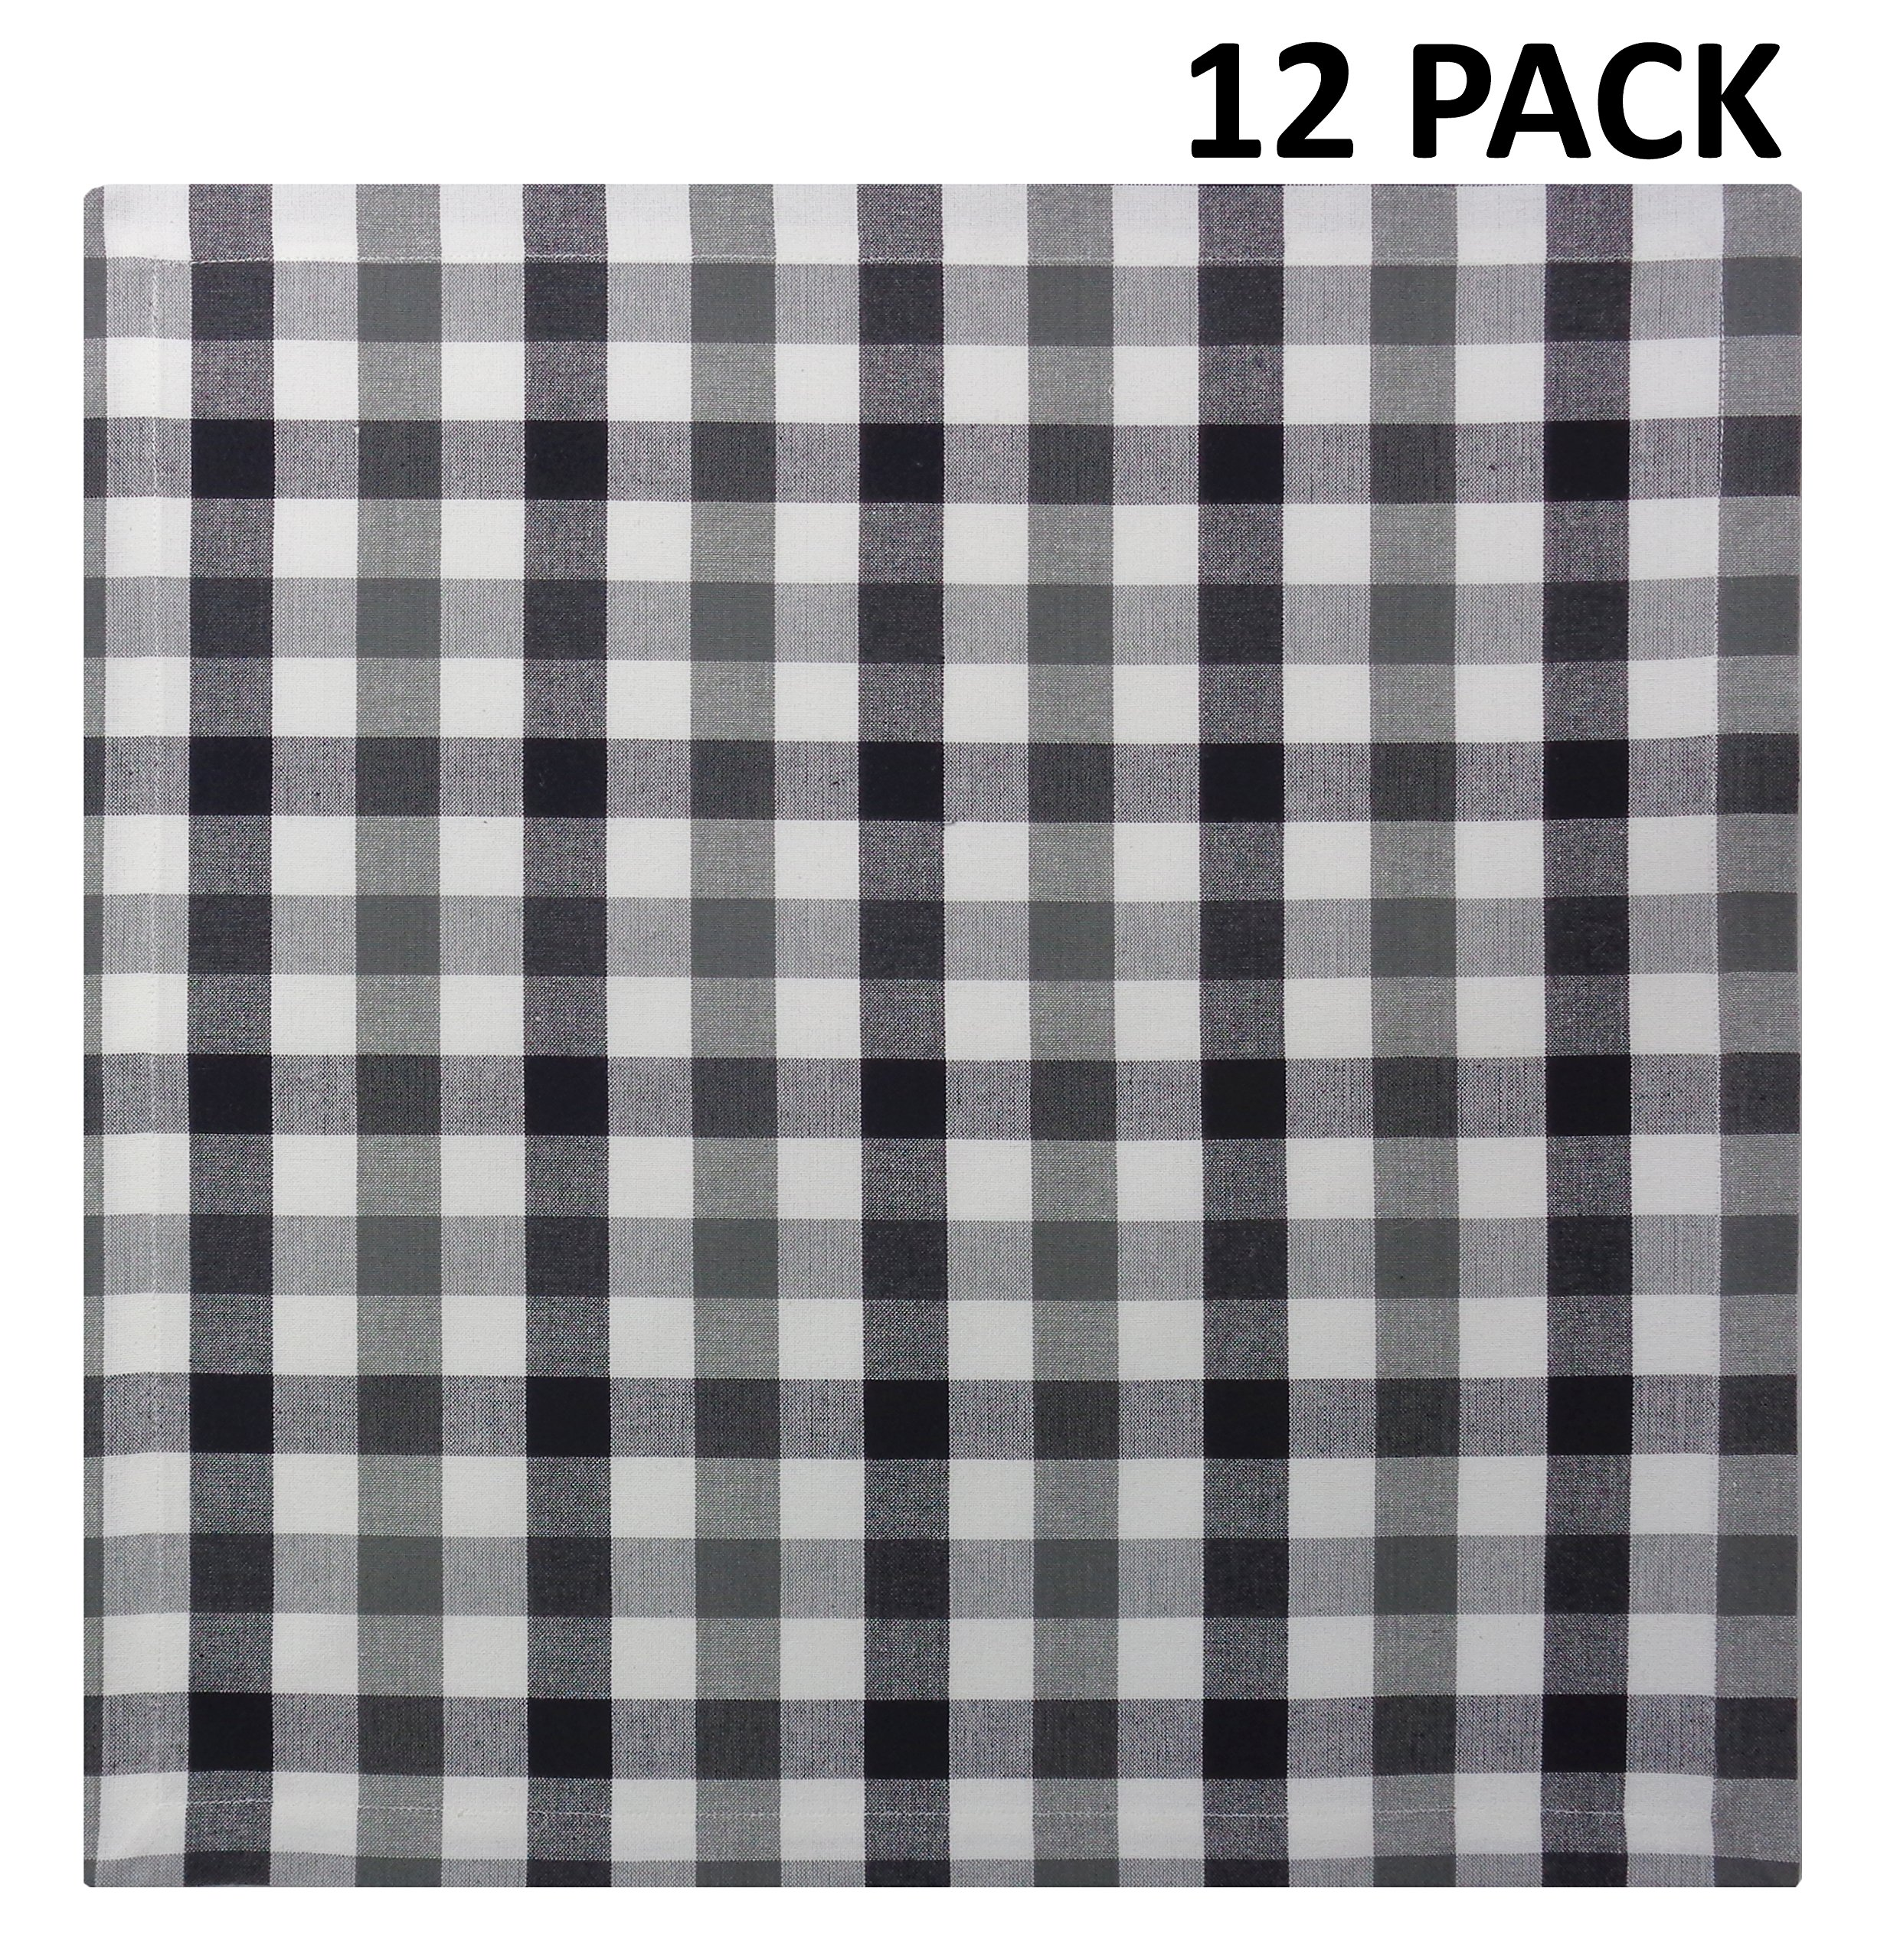 Cotton Craft 12 Pack Gingham Checks Oversized Dinner Napkins - Black Grey - Size 20x20-100% Cotton - Tailored with Mitered Corners and a Generous Hem - Easy Care Machine wash by Cotton Craft (Image #2)